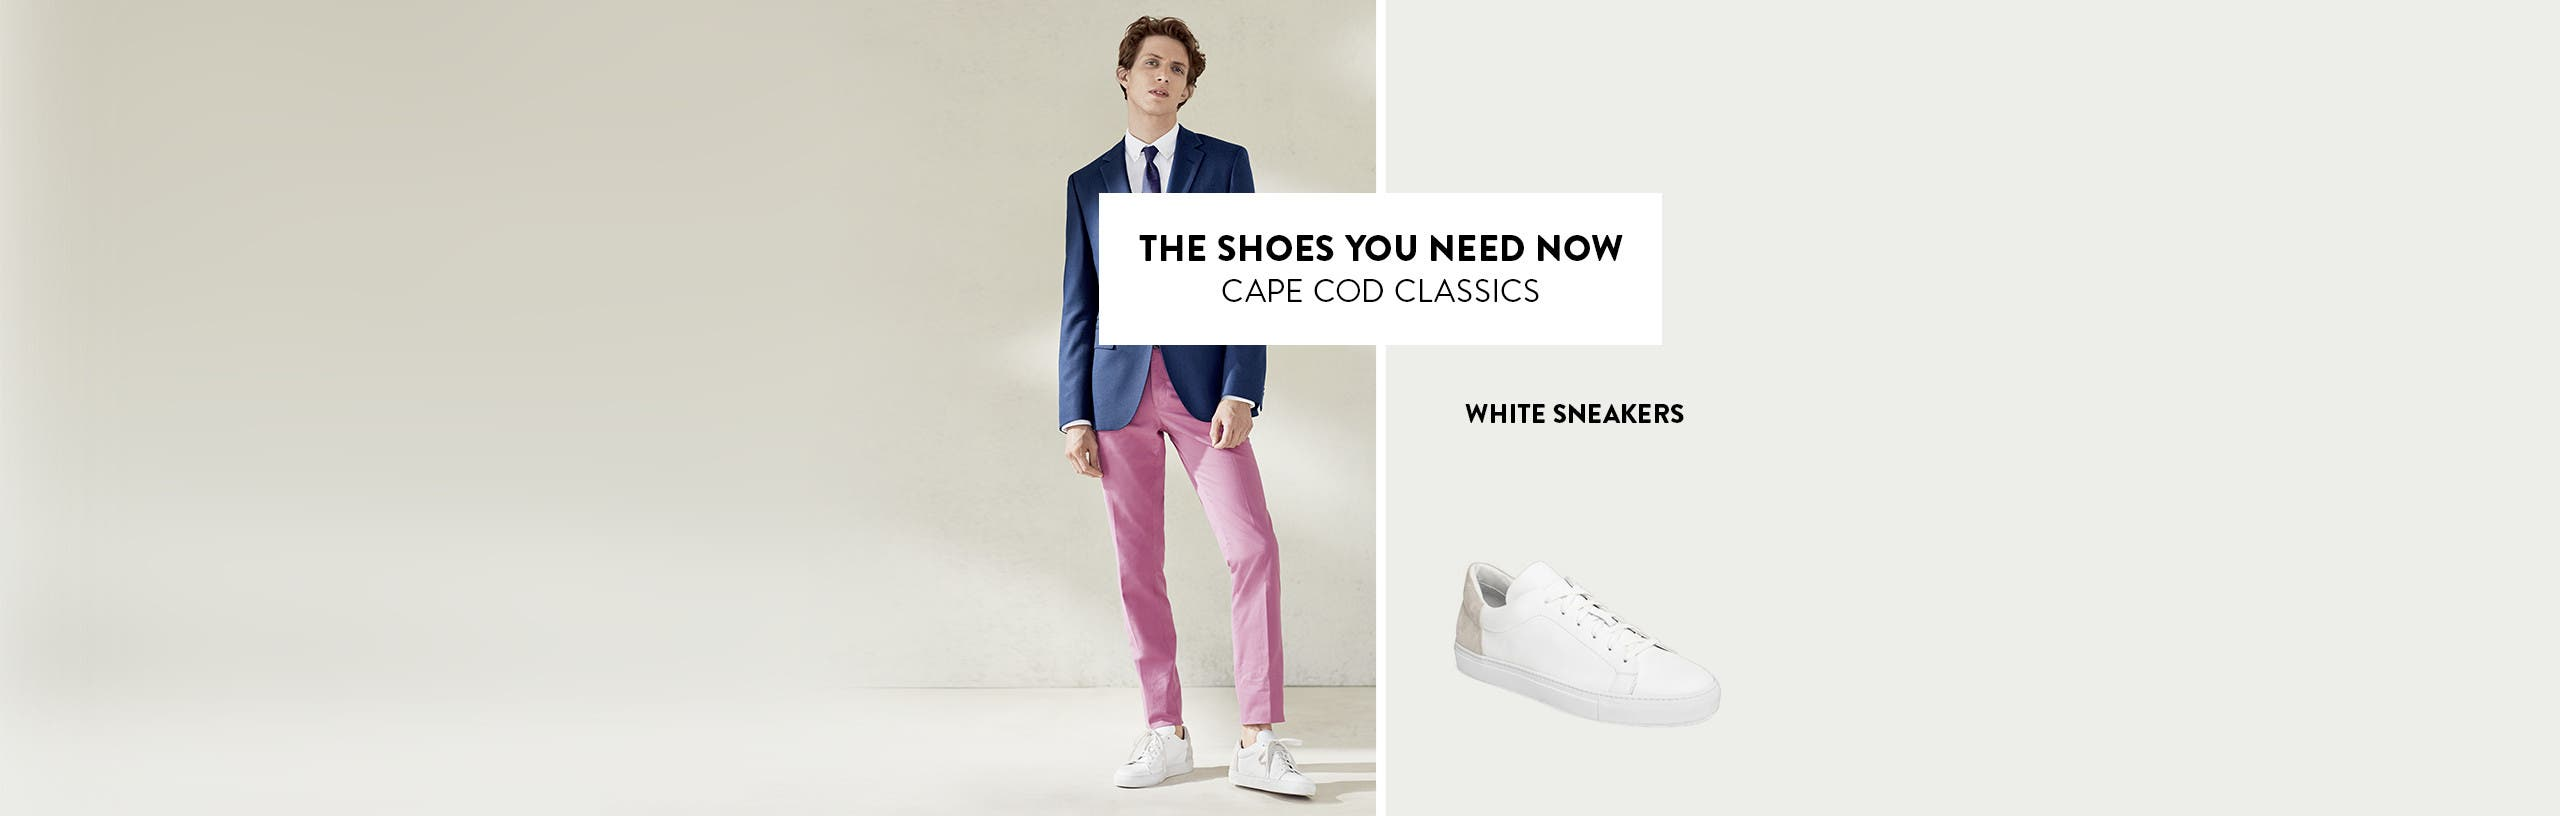 The shoes you need now: Cape Cod classics. Shop white sneakers.